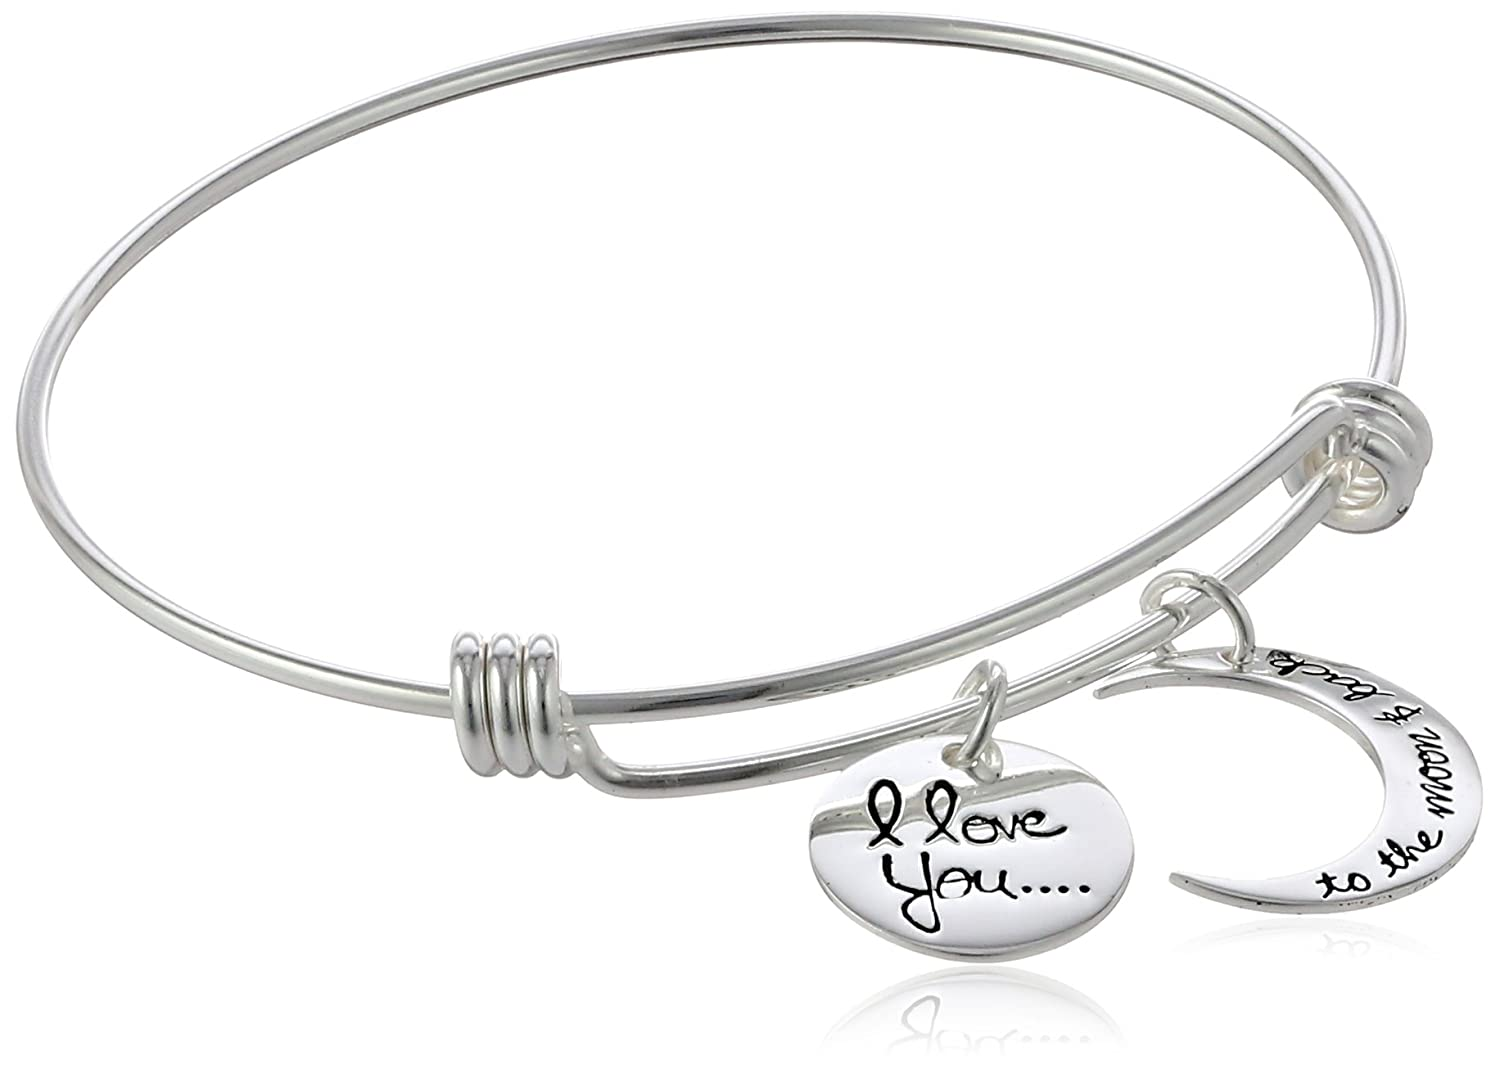 daughter jewelry forever dp amazon friends charm bangle mother silver com bangles bracelet adjustable sterling